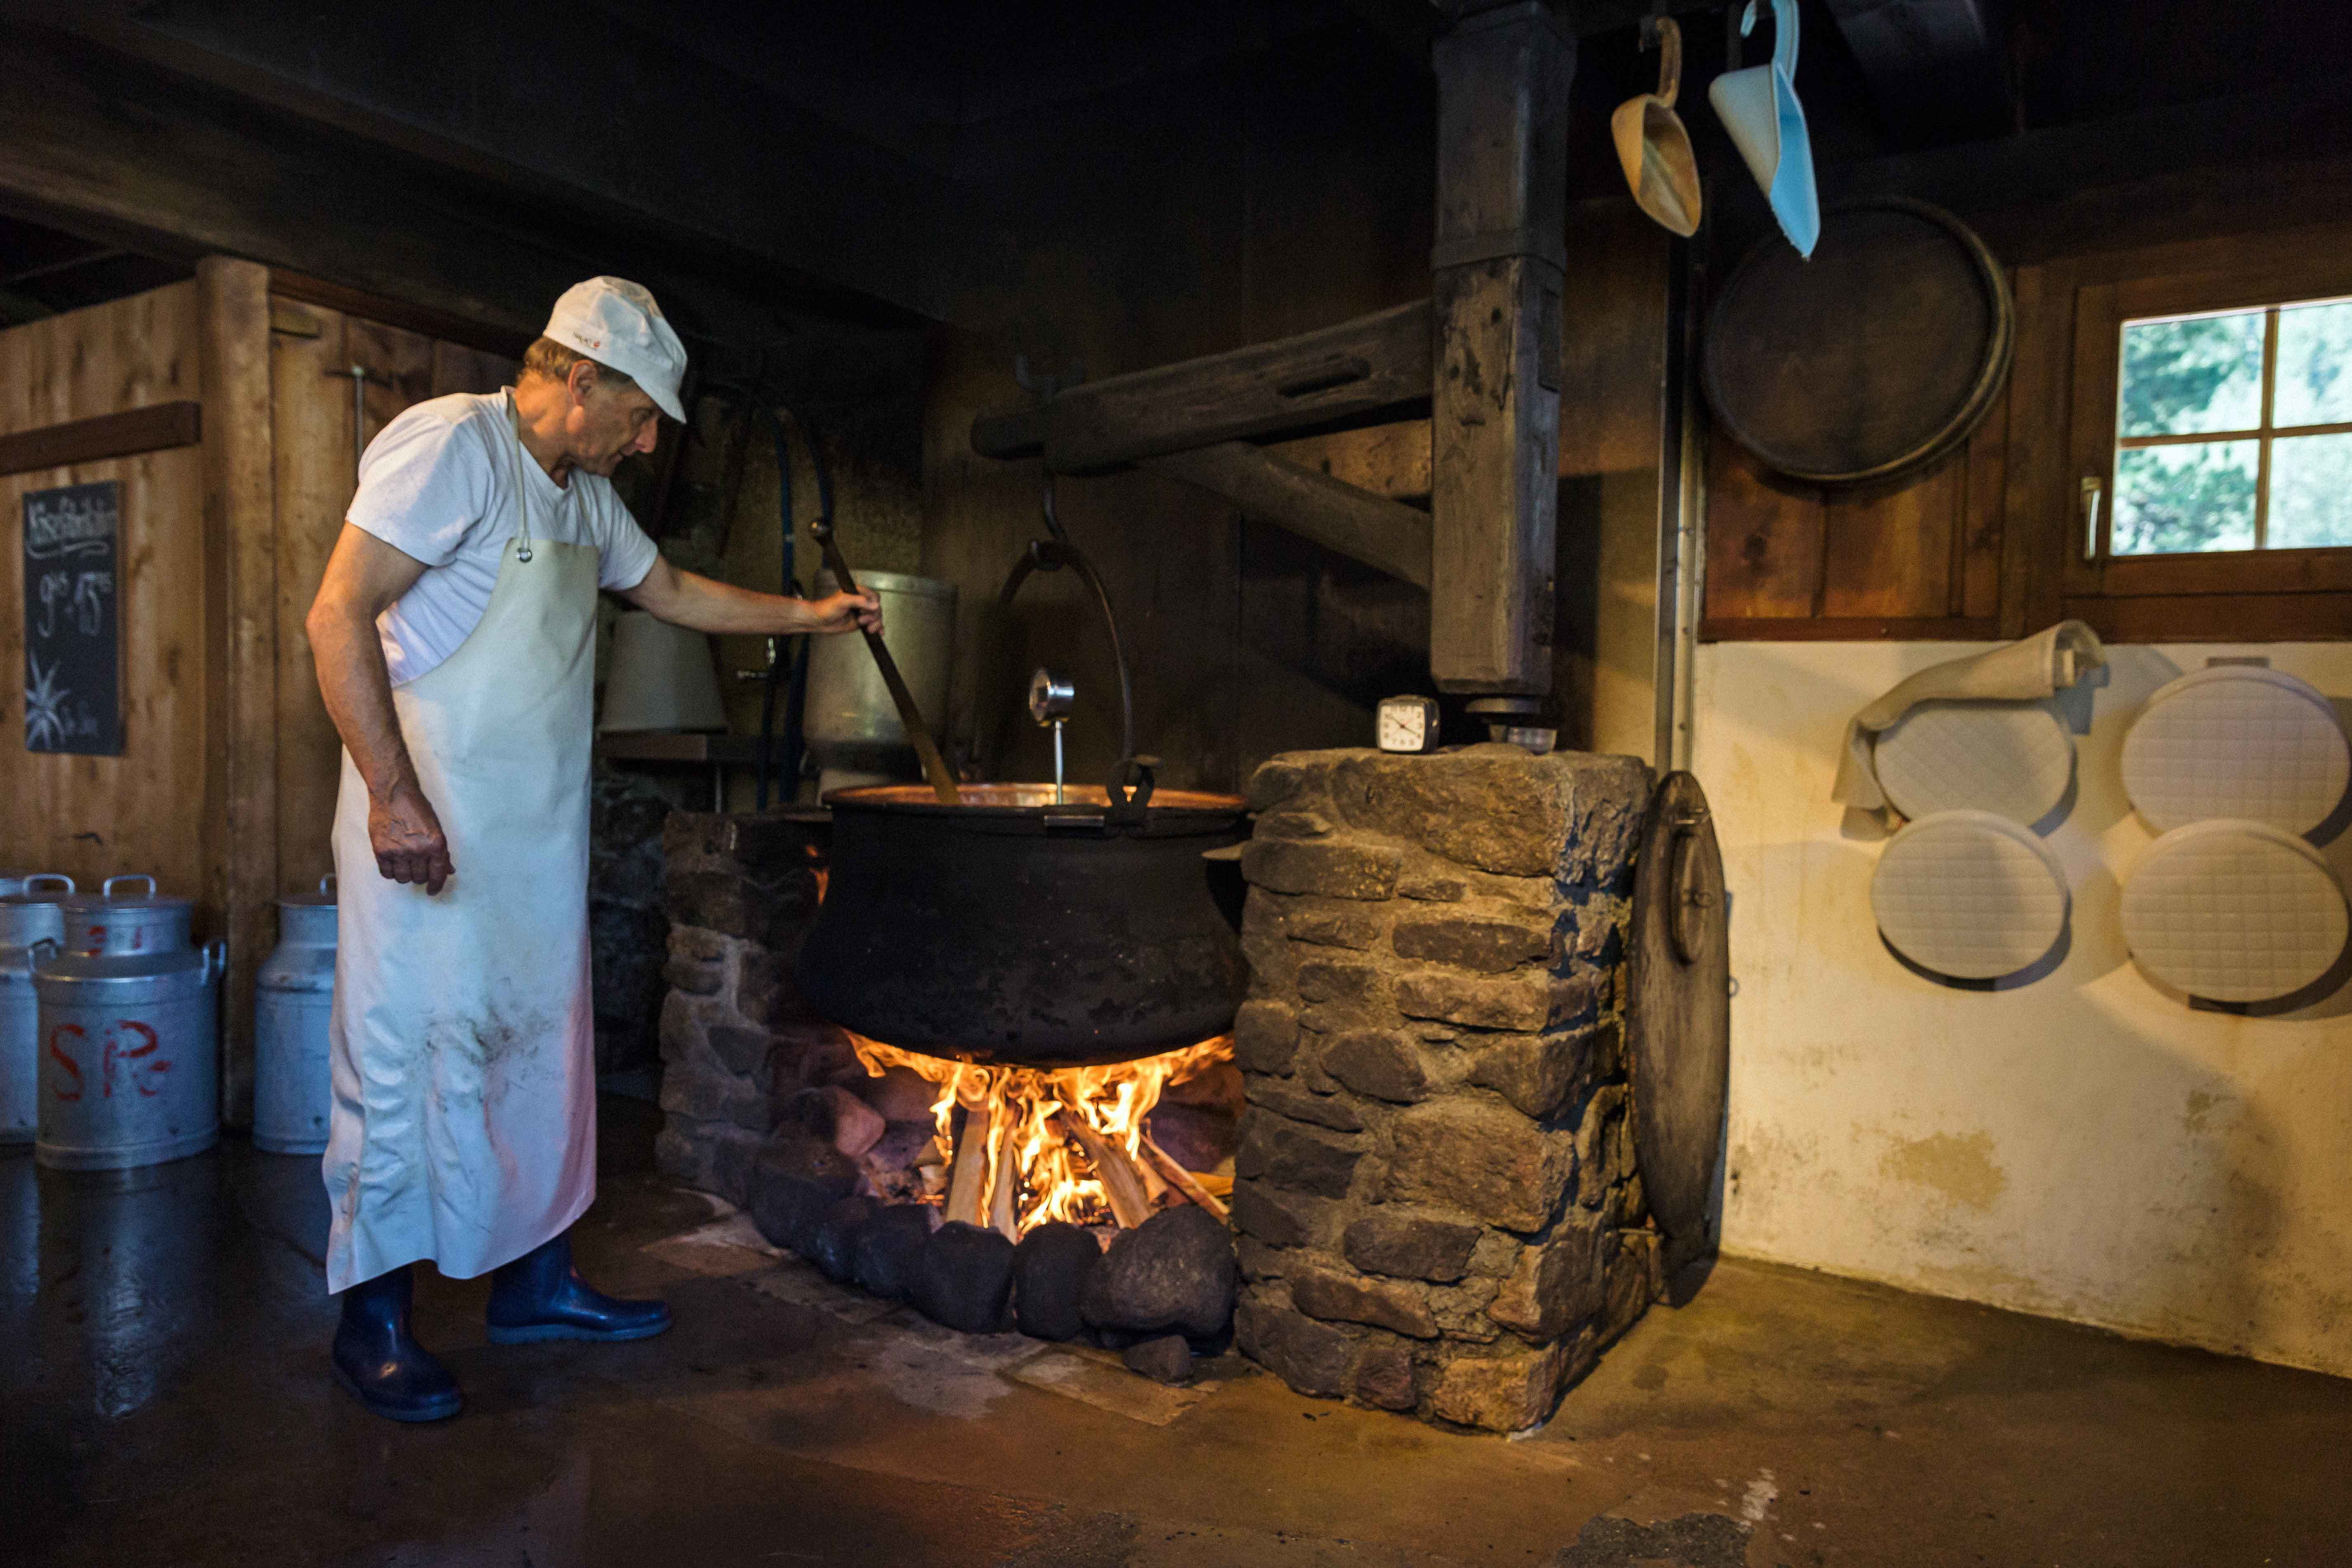 Traditional production of alpine cheese in the Engadin